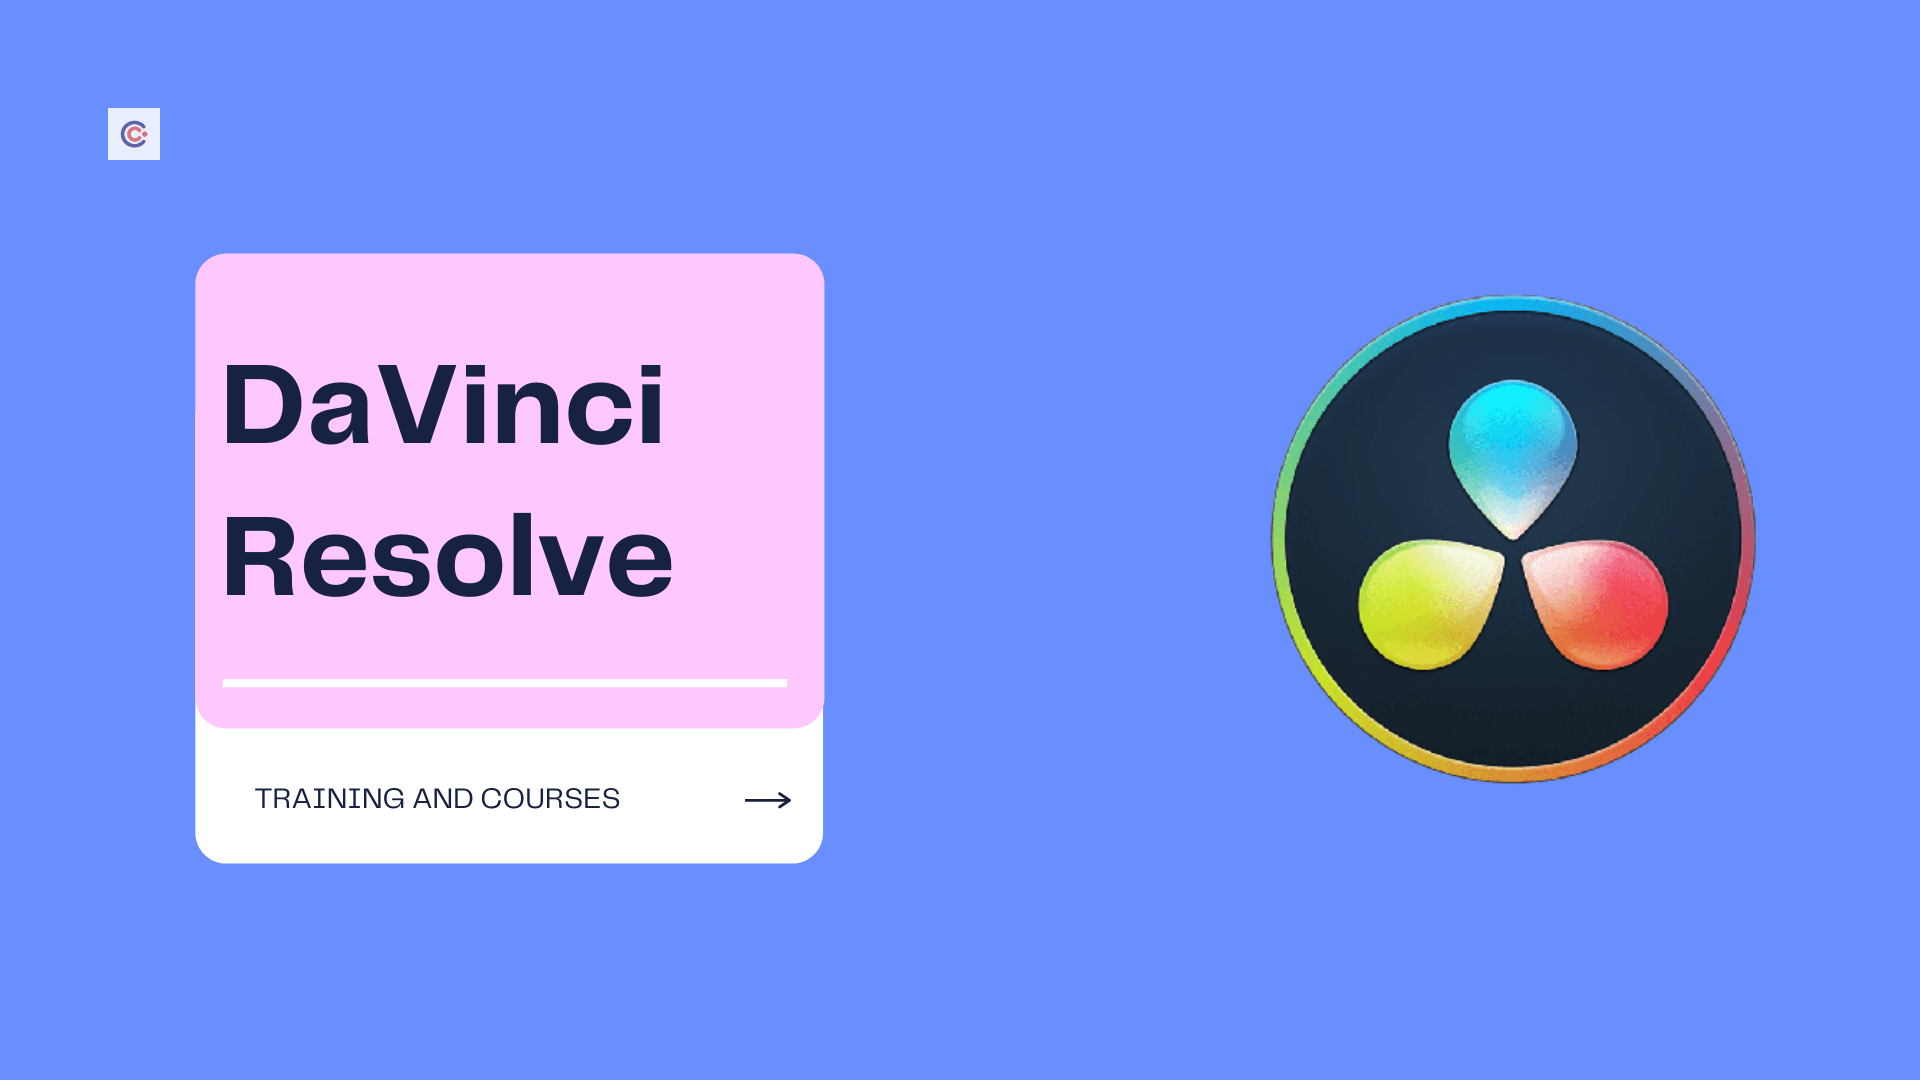 8 Best DaVinci Resolve Training and Courses - Learn DaVinci Resolve Online